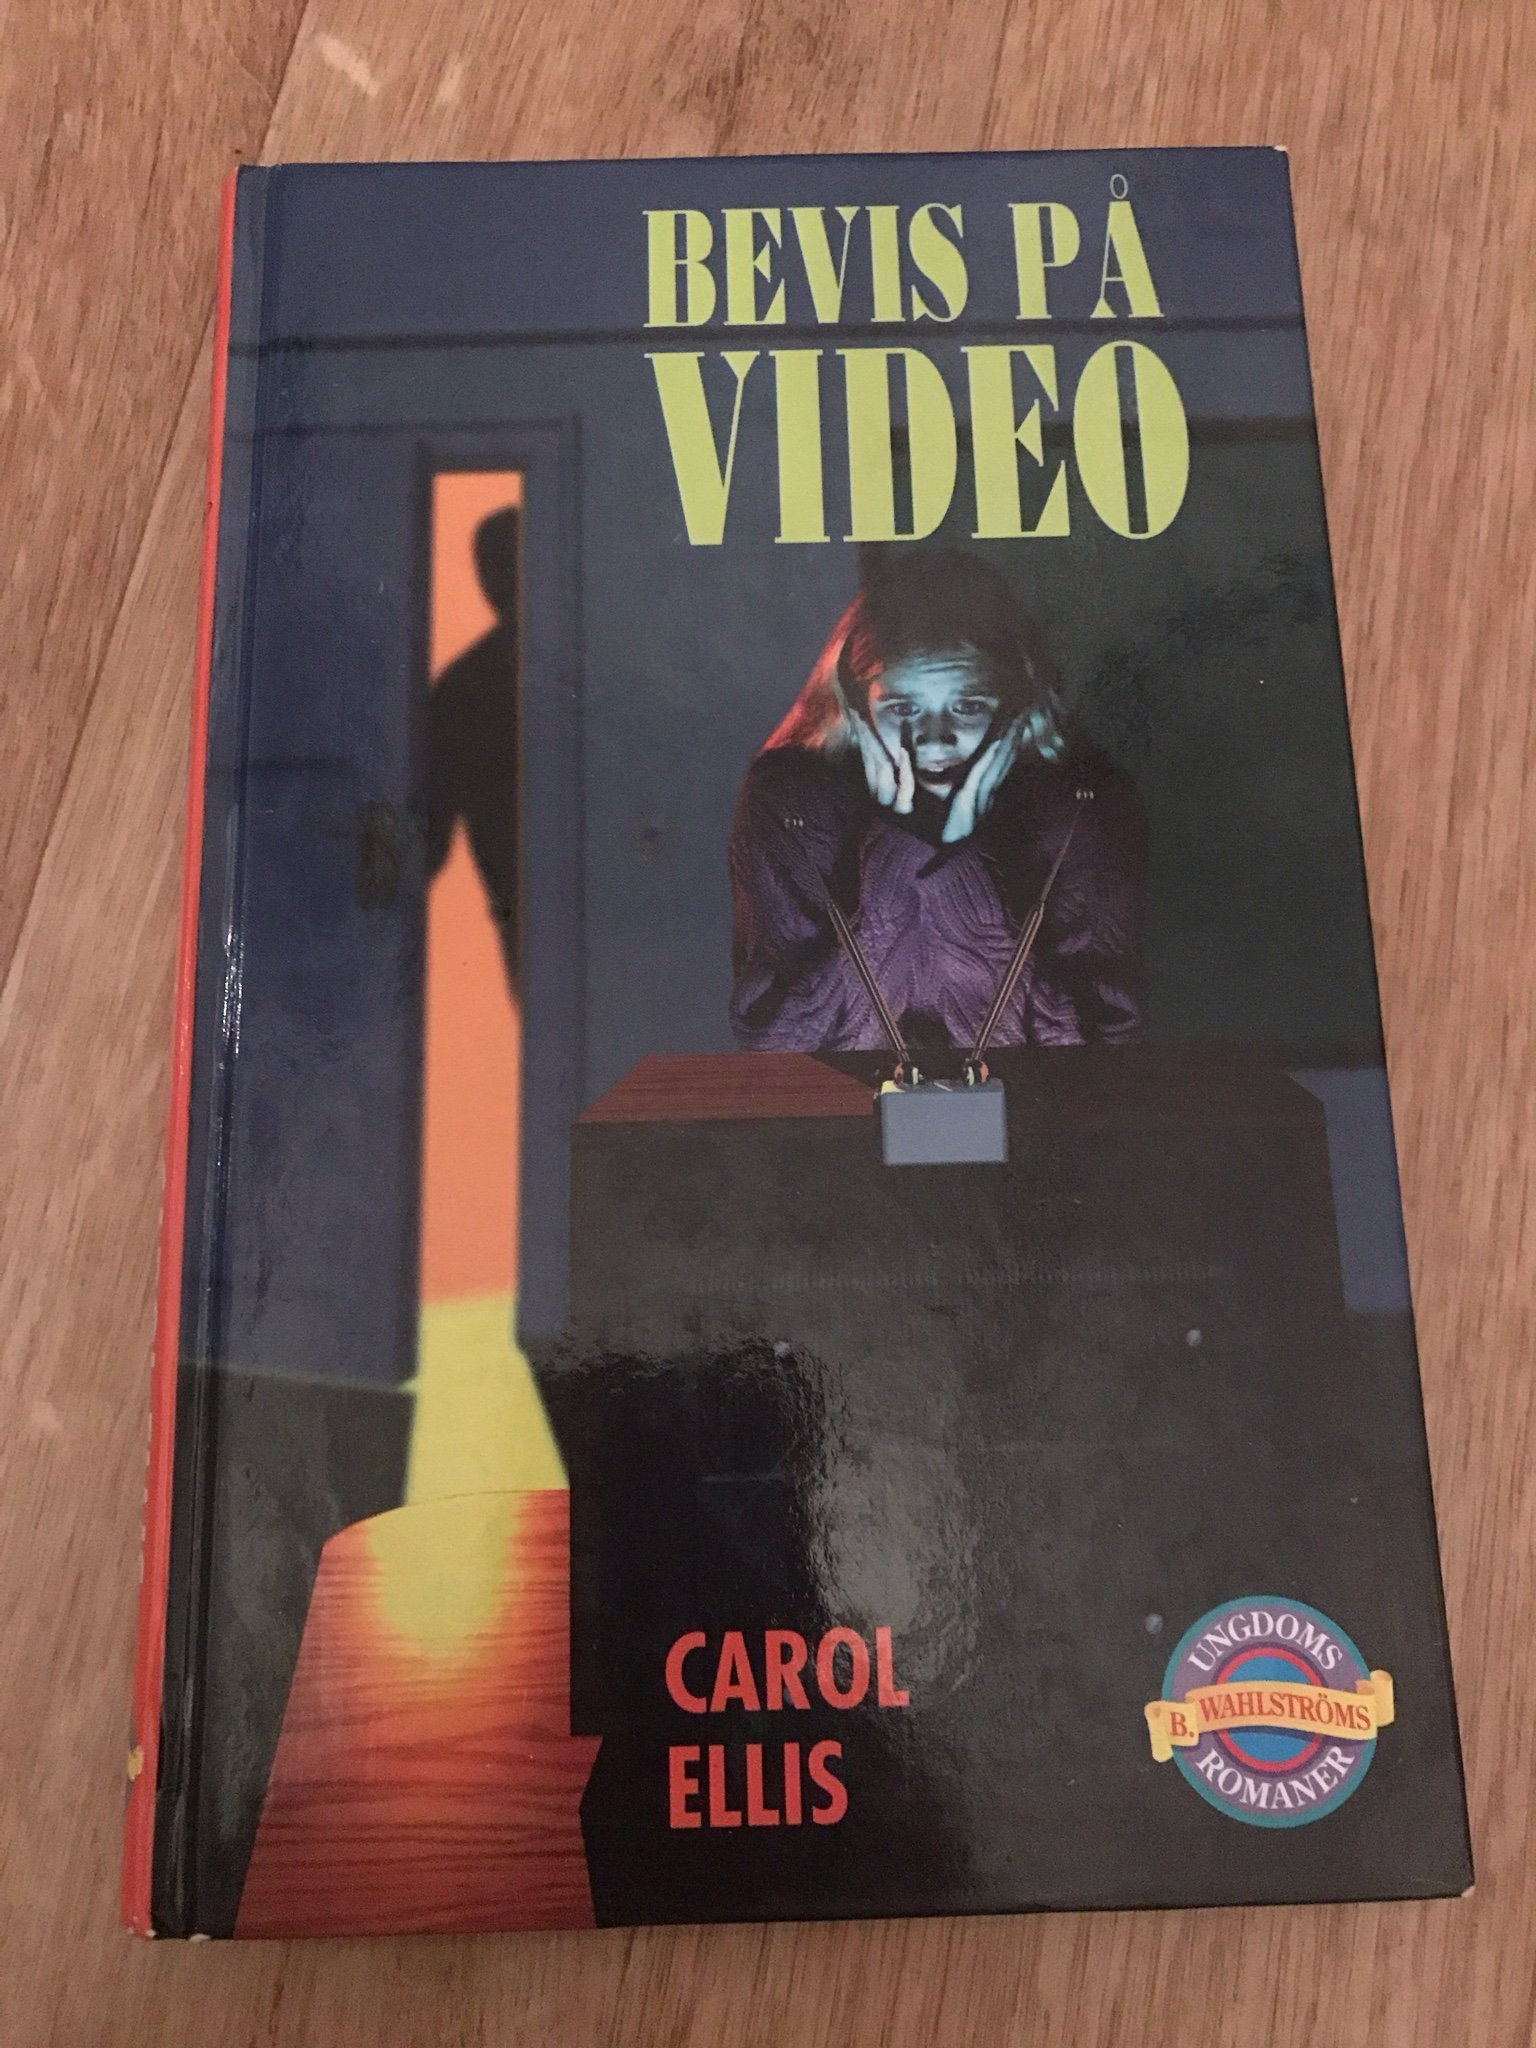 Bevis på video - Carol Ellis 1996